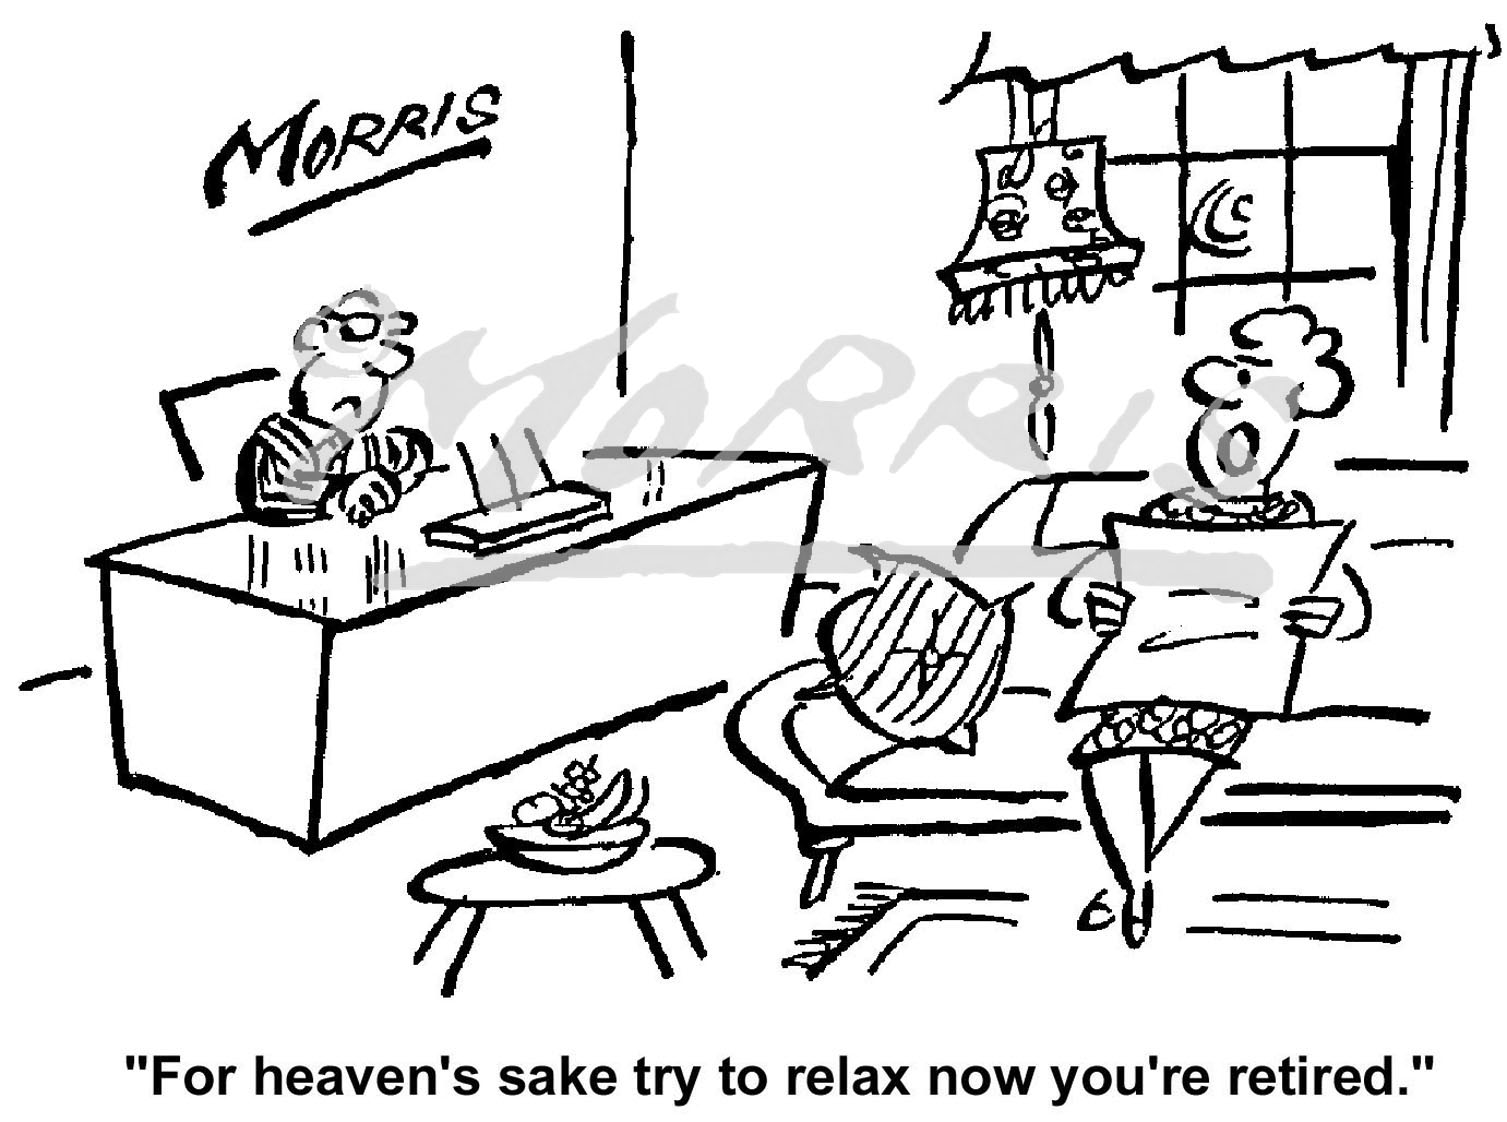 Retirement comic cartoon Ref: 0870bw